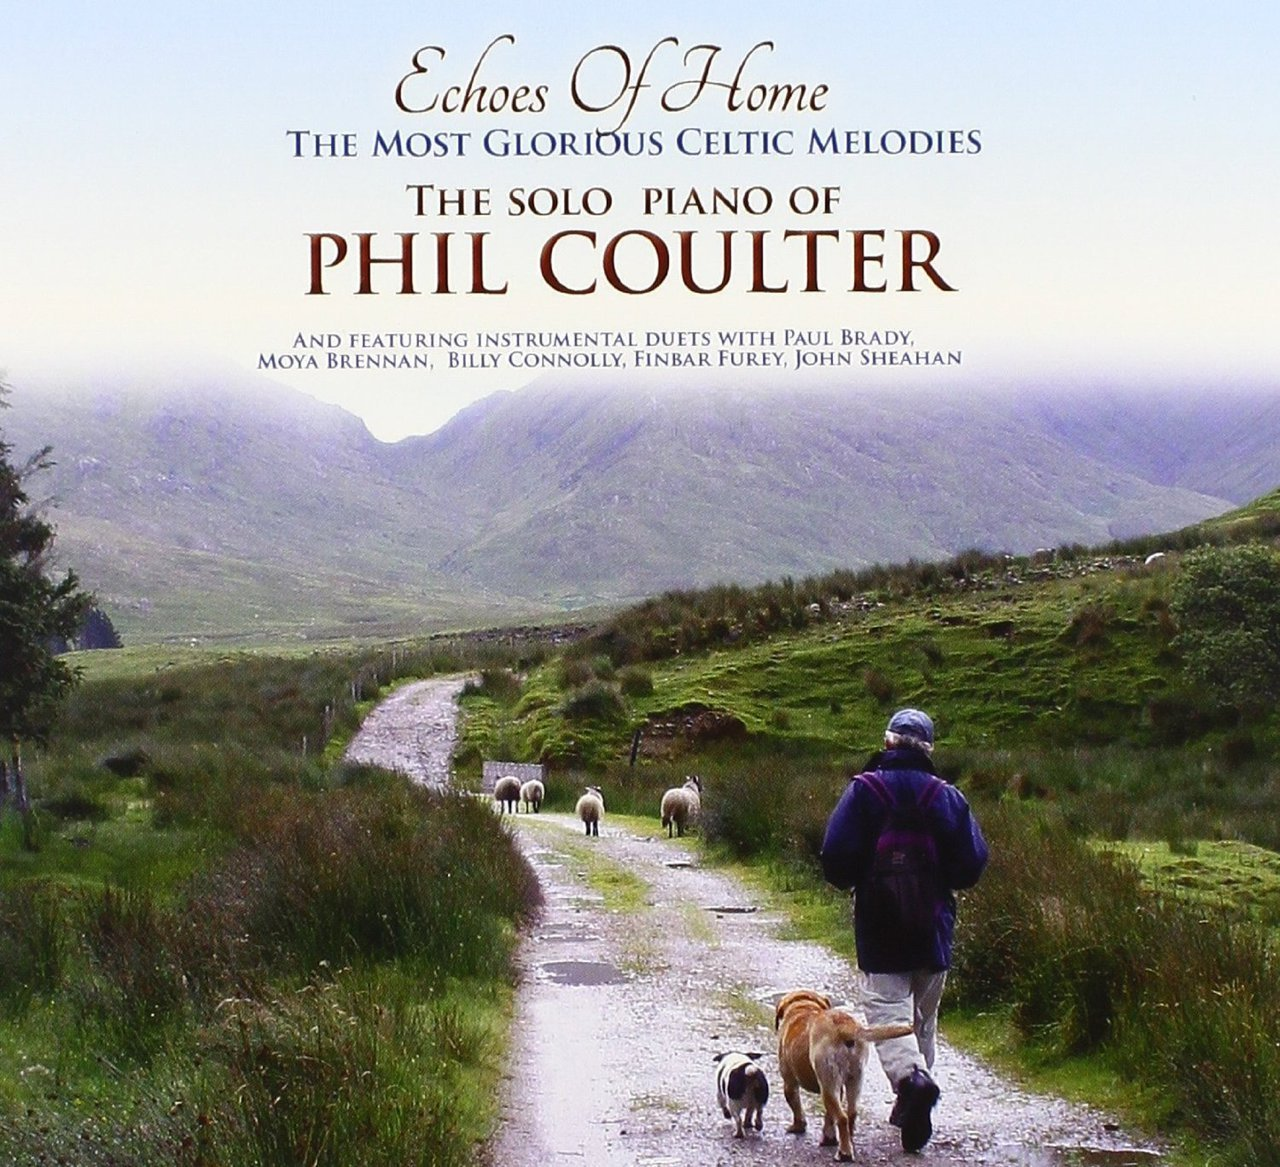 Echoes of home by phil coulter